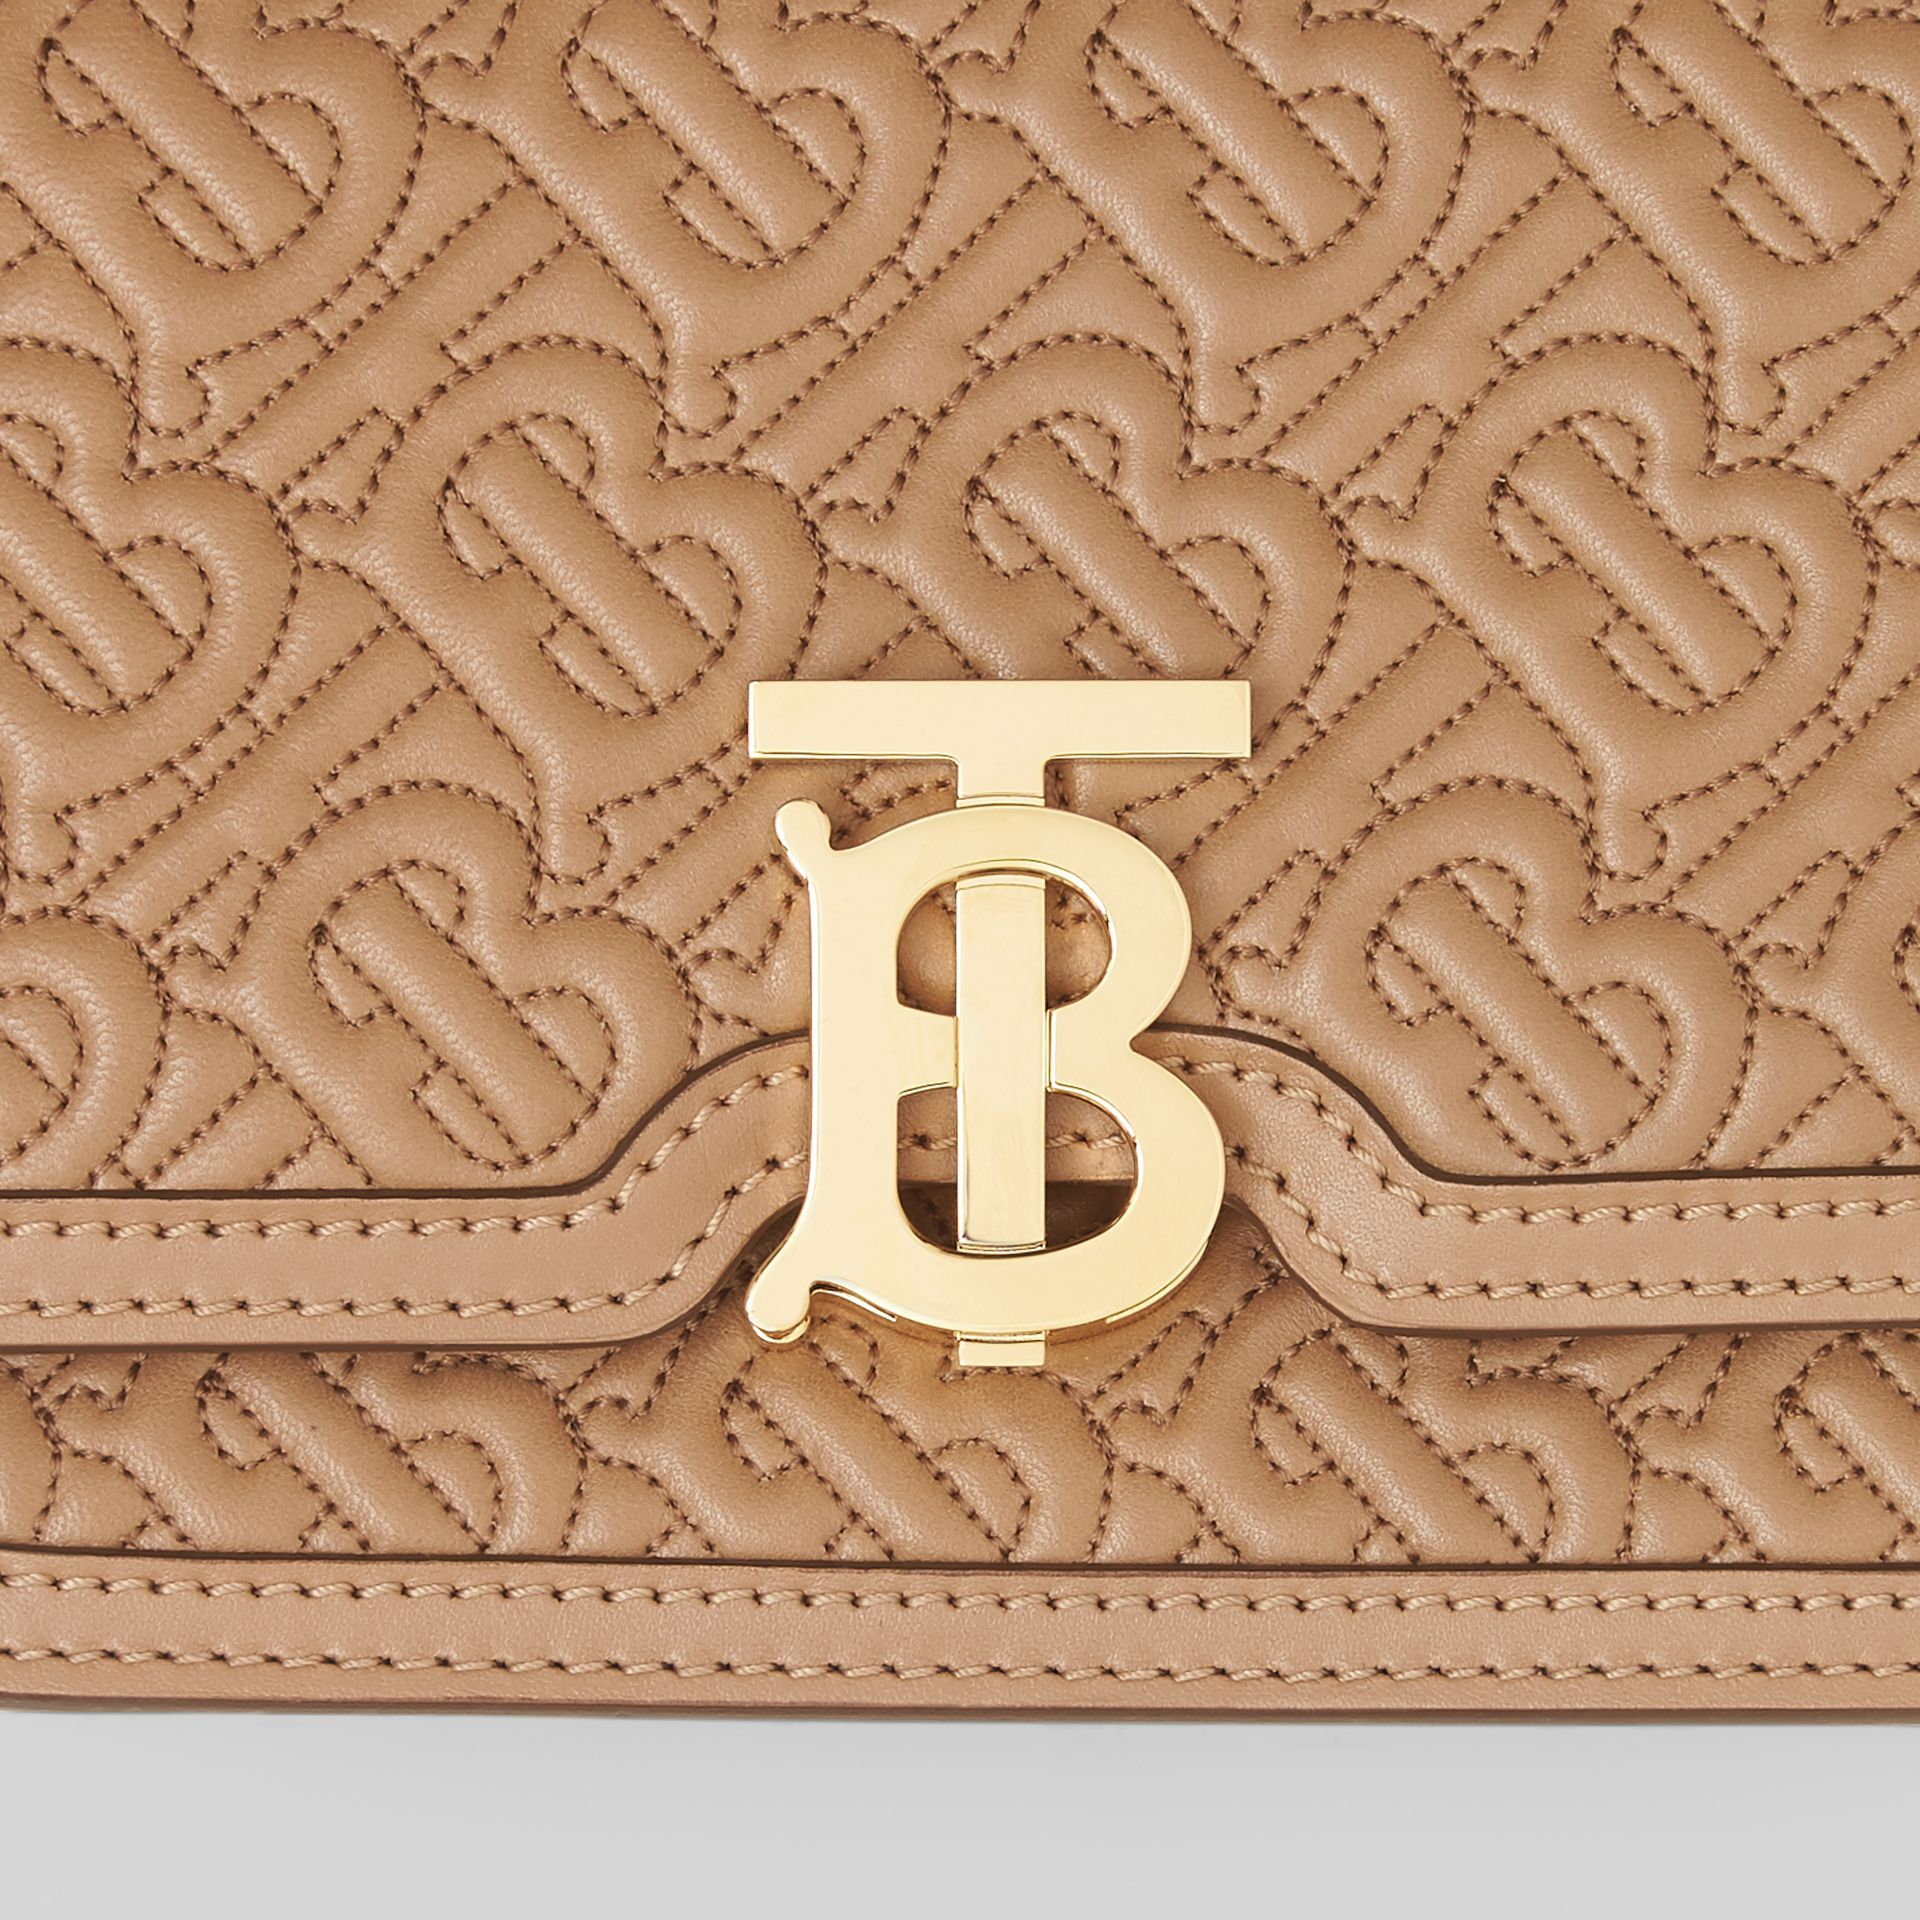 Belted Quilted Monogram Lambskin TB Bag in Honey - Women | Burberry - gallery image 1